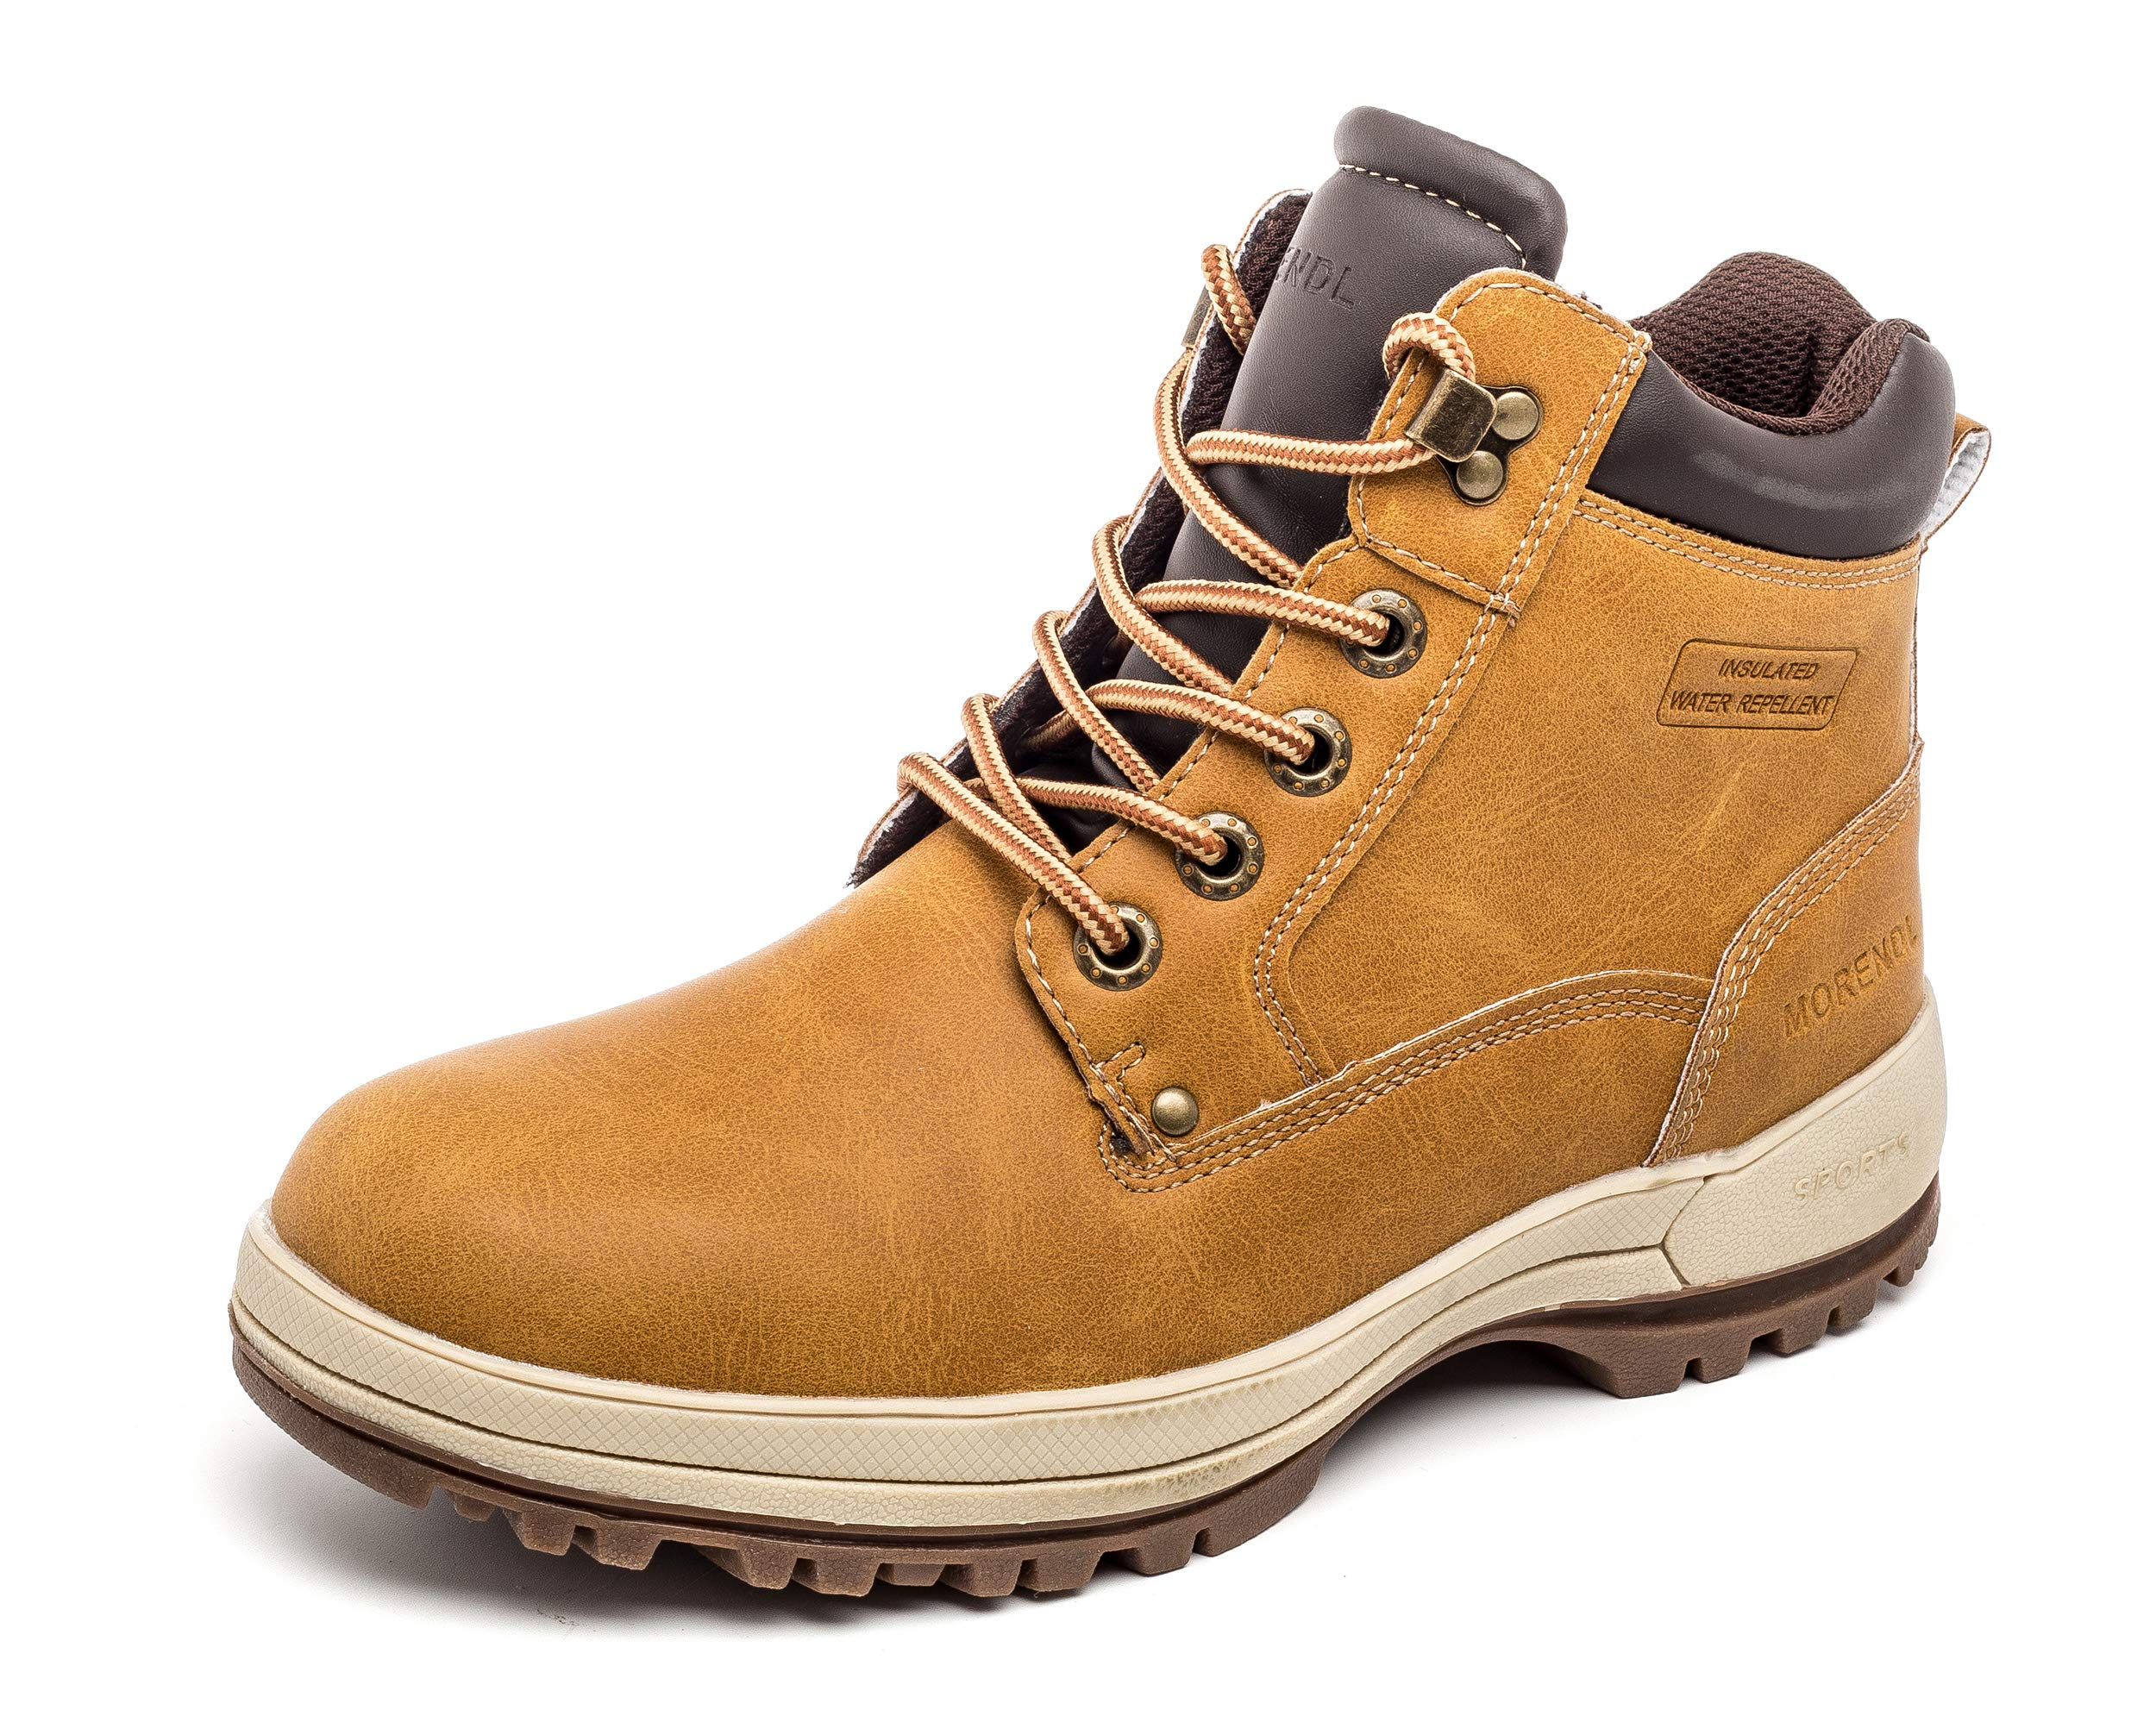 ee23d4847b9107 [MORENDL] Work Boots, Snow Boots, Climbing Shoes, Outdoor, Leather, Rain,  Shoes, Boots, Waterproof, Cold Protection, Slip, Men's Platform, Shoes